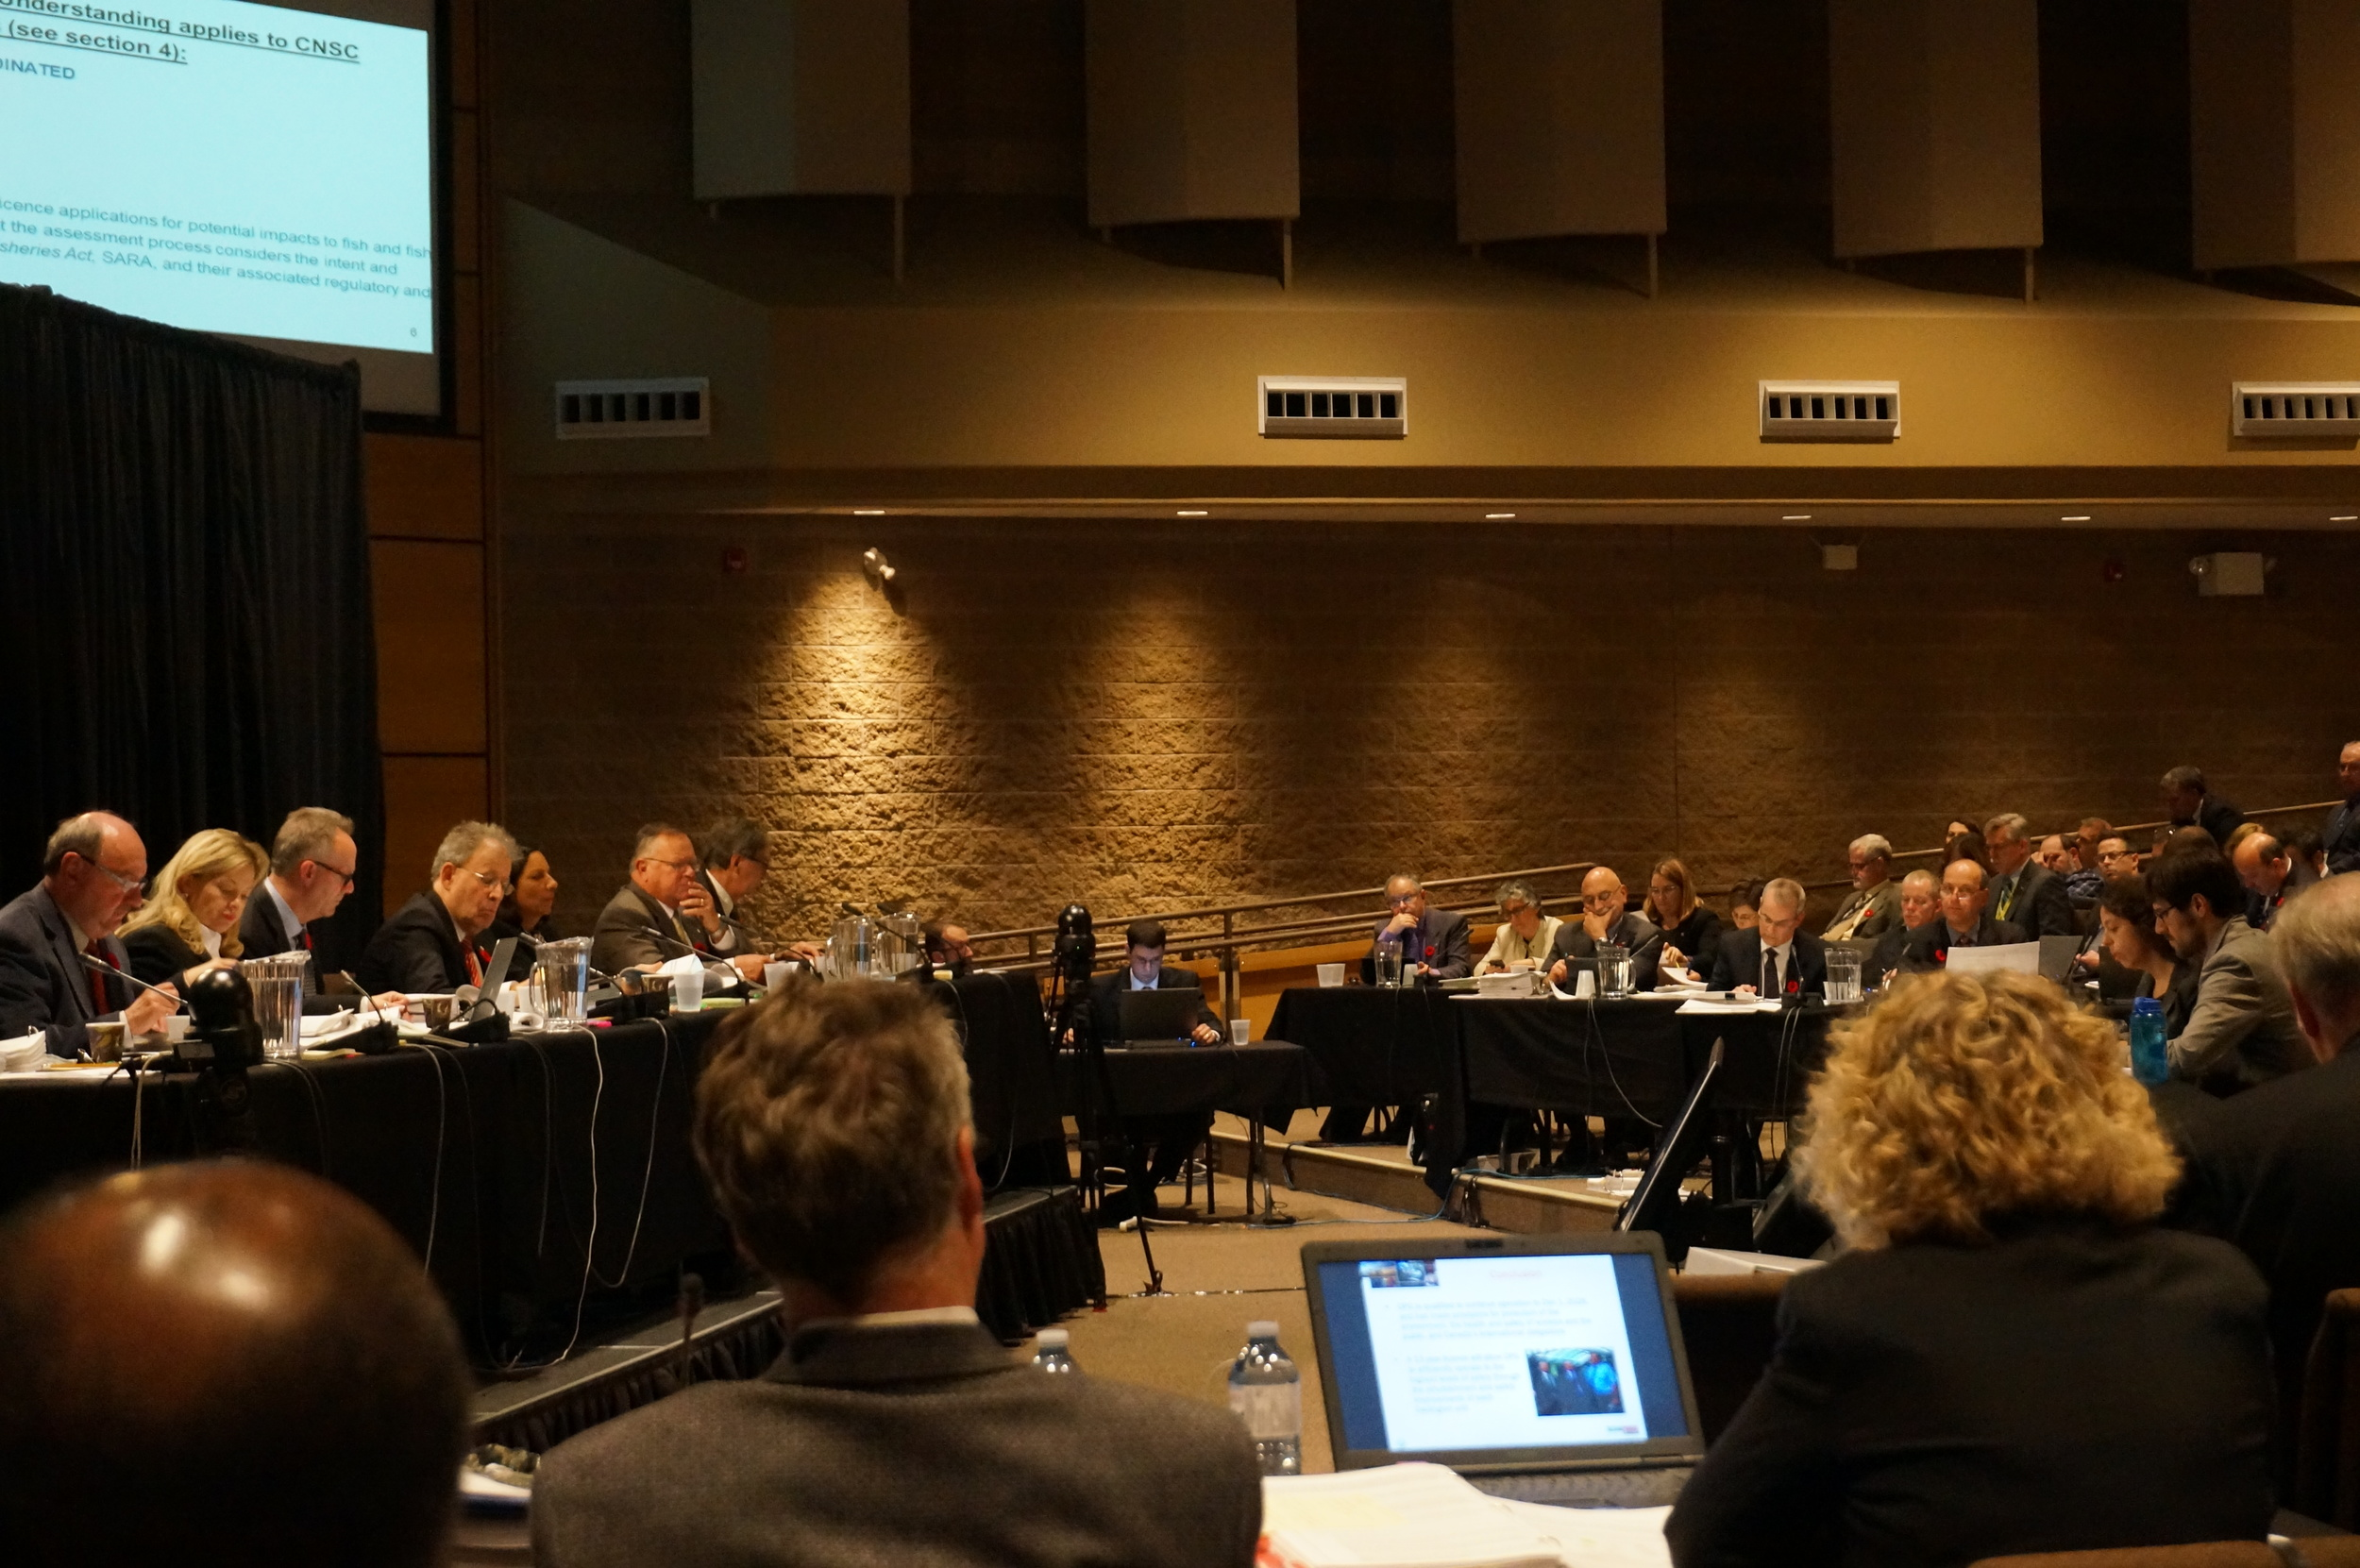 CNSC hearing room during Waterkeeper's presentation. (Photo by Lake Ontario Waterkeeper)